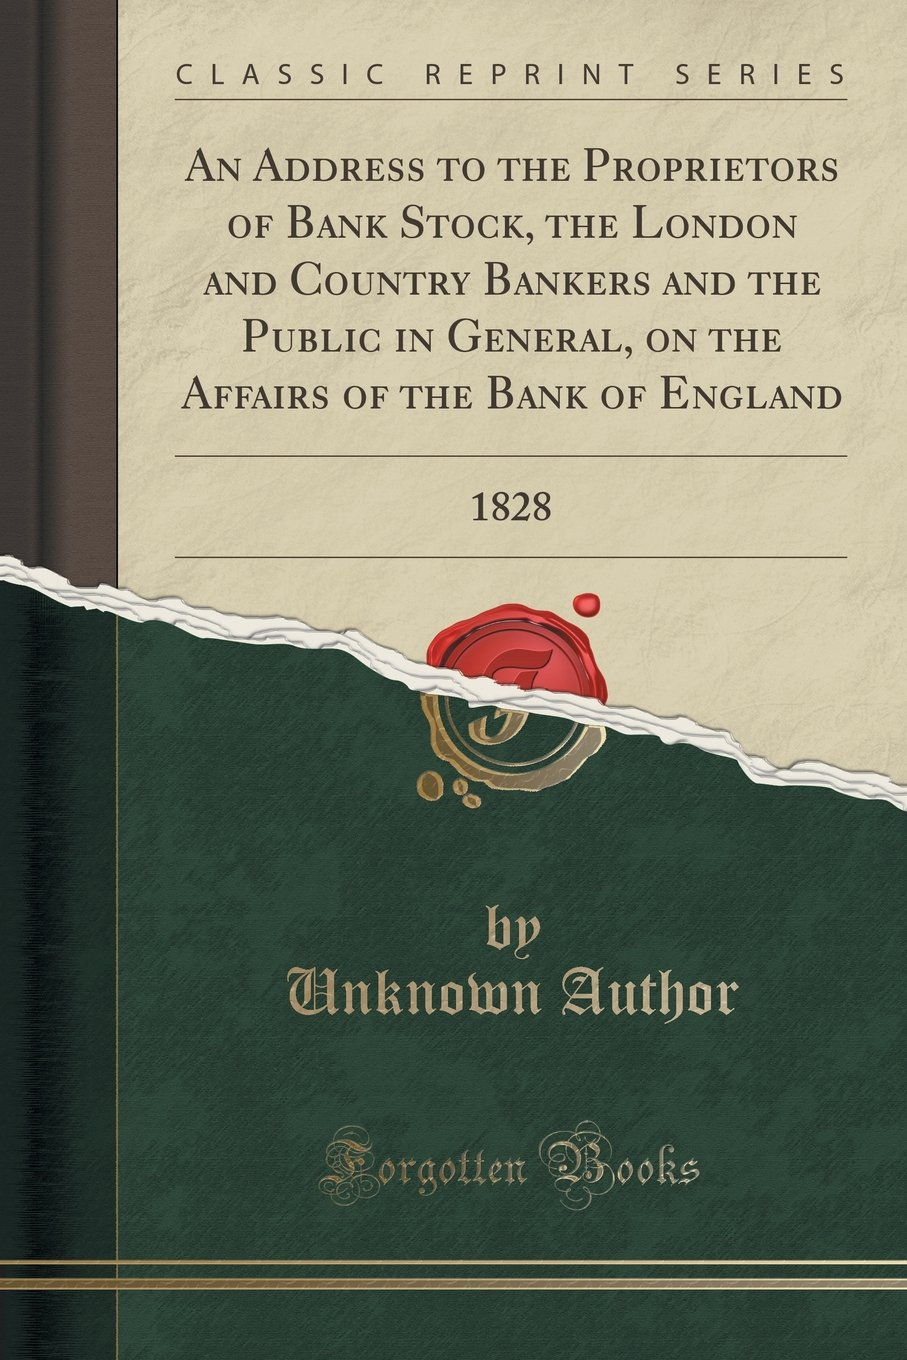 An Address to the Proprietors of Bank Stock, the London and Country Bankers and the Public in General, on the Affairs of the Bank of England: 1828 (Classic Reprint) pdf